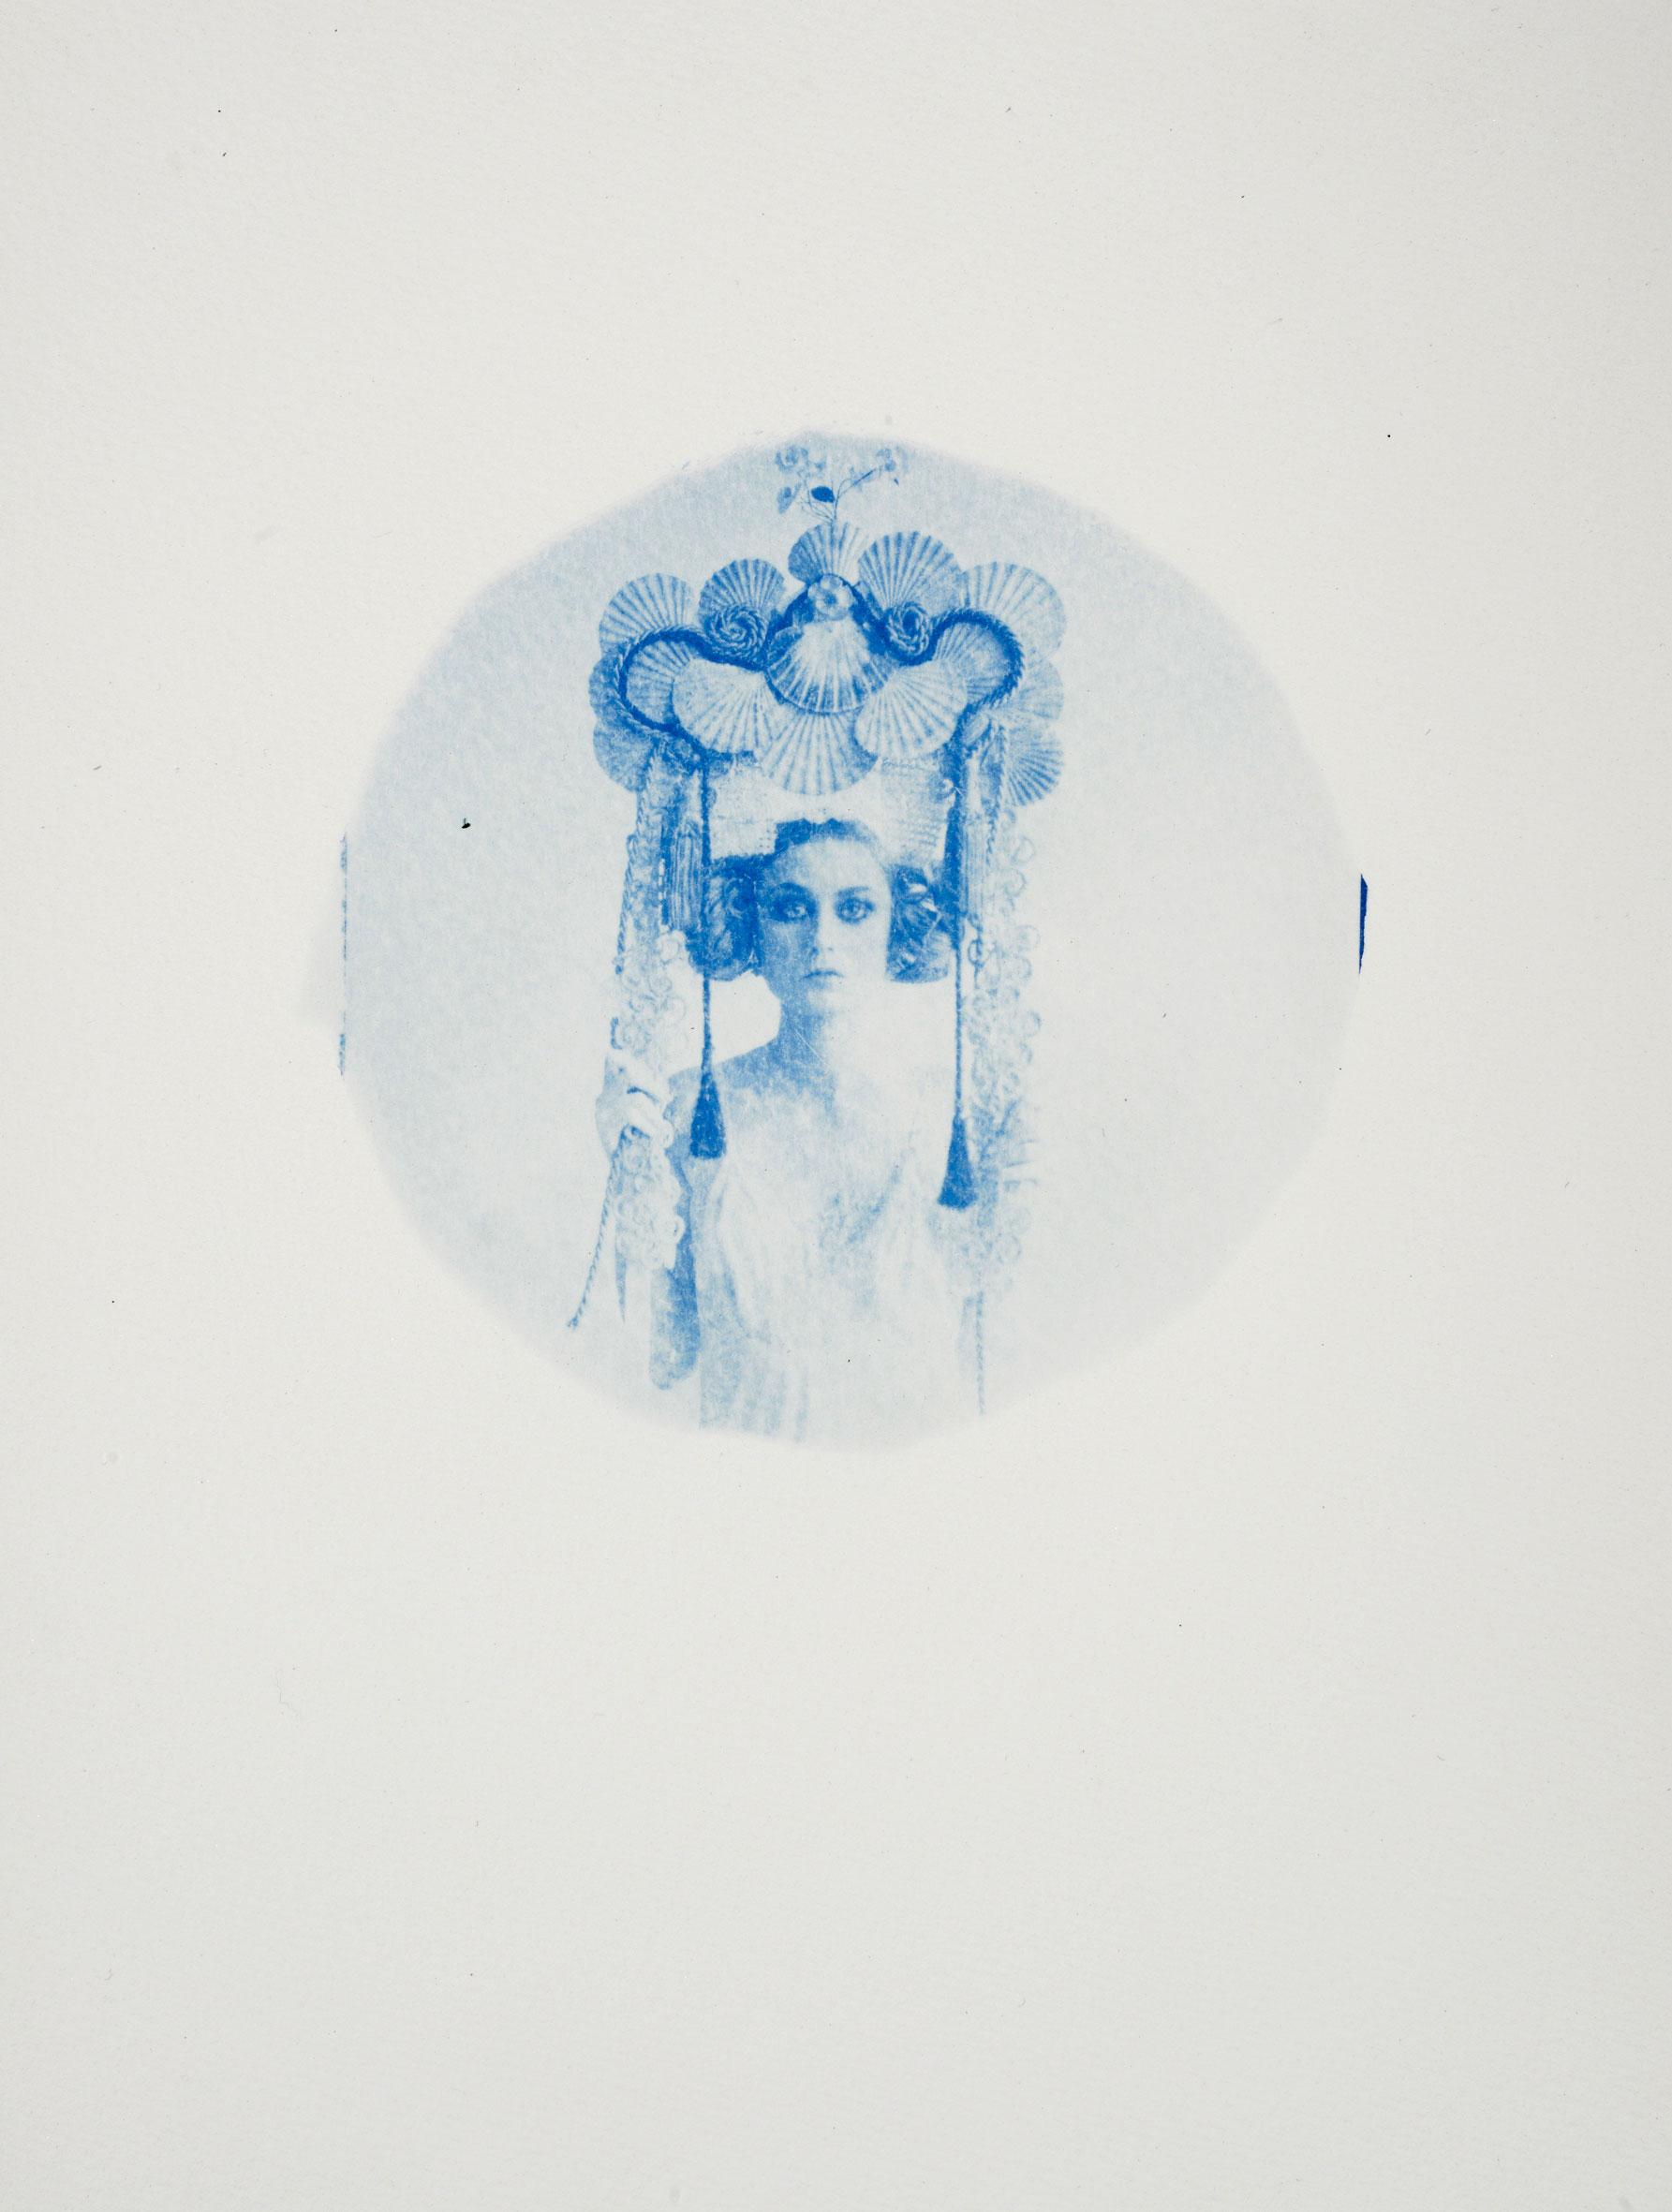 Ondine  - 2015 - Original, Cyanotype on paper, framed Artwork: 11 x 9 inches / 29 x 23 cm - SOLD